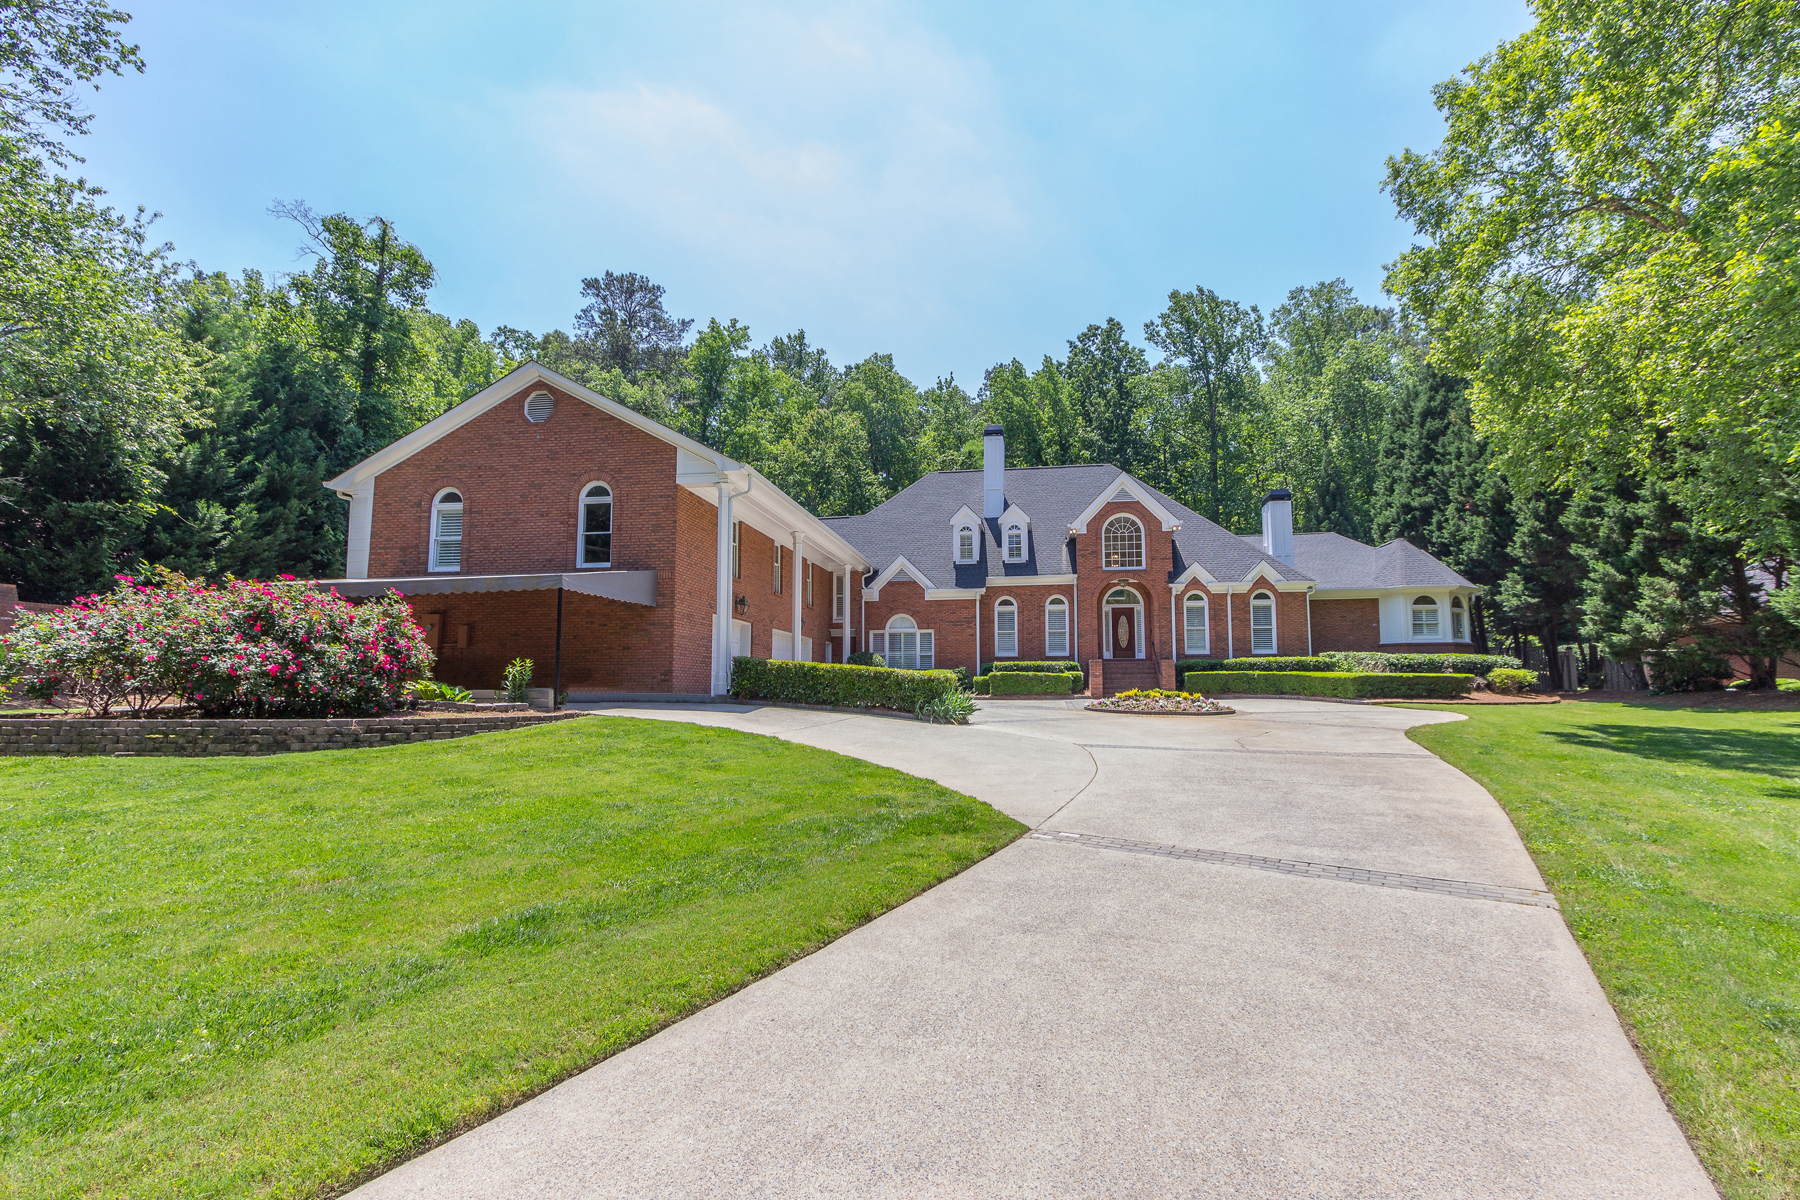 Single Family Home for Sale at Privacy At Its Finest At An Incredible Value 620 Heards Ferry Road Atlanta, Georgia, 30328 United States